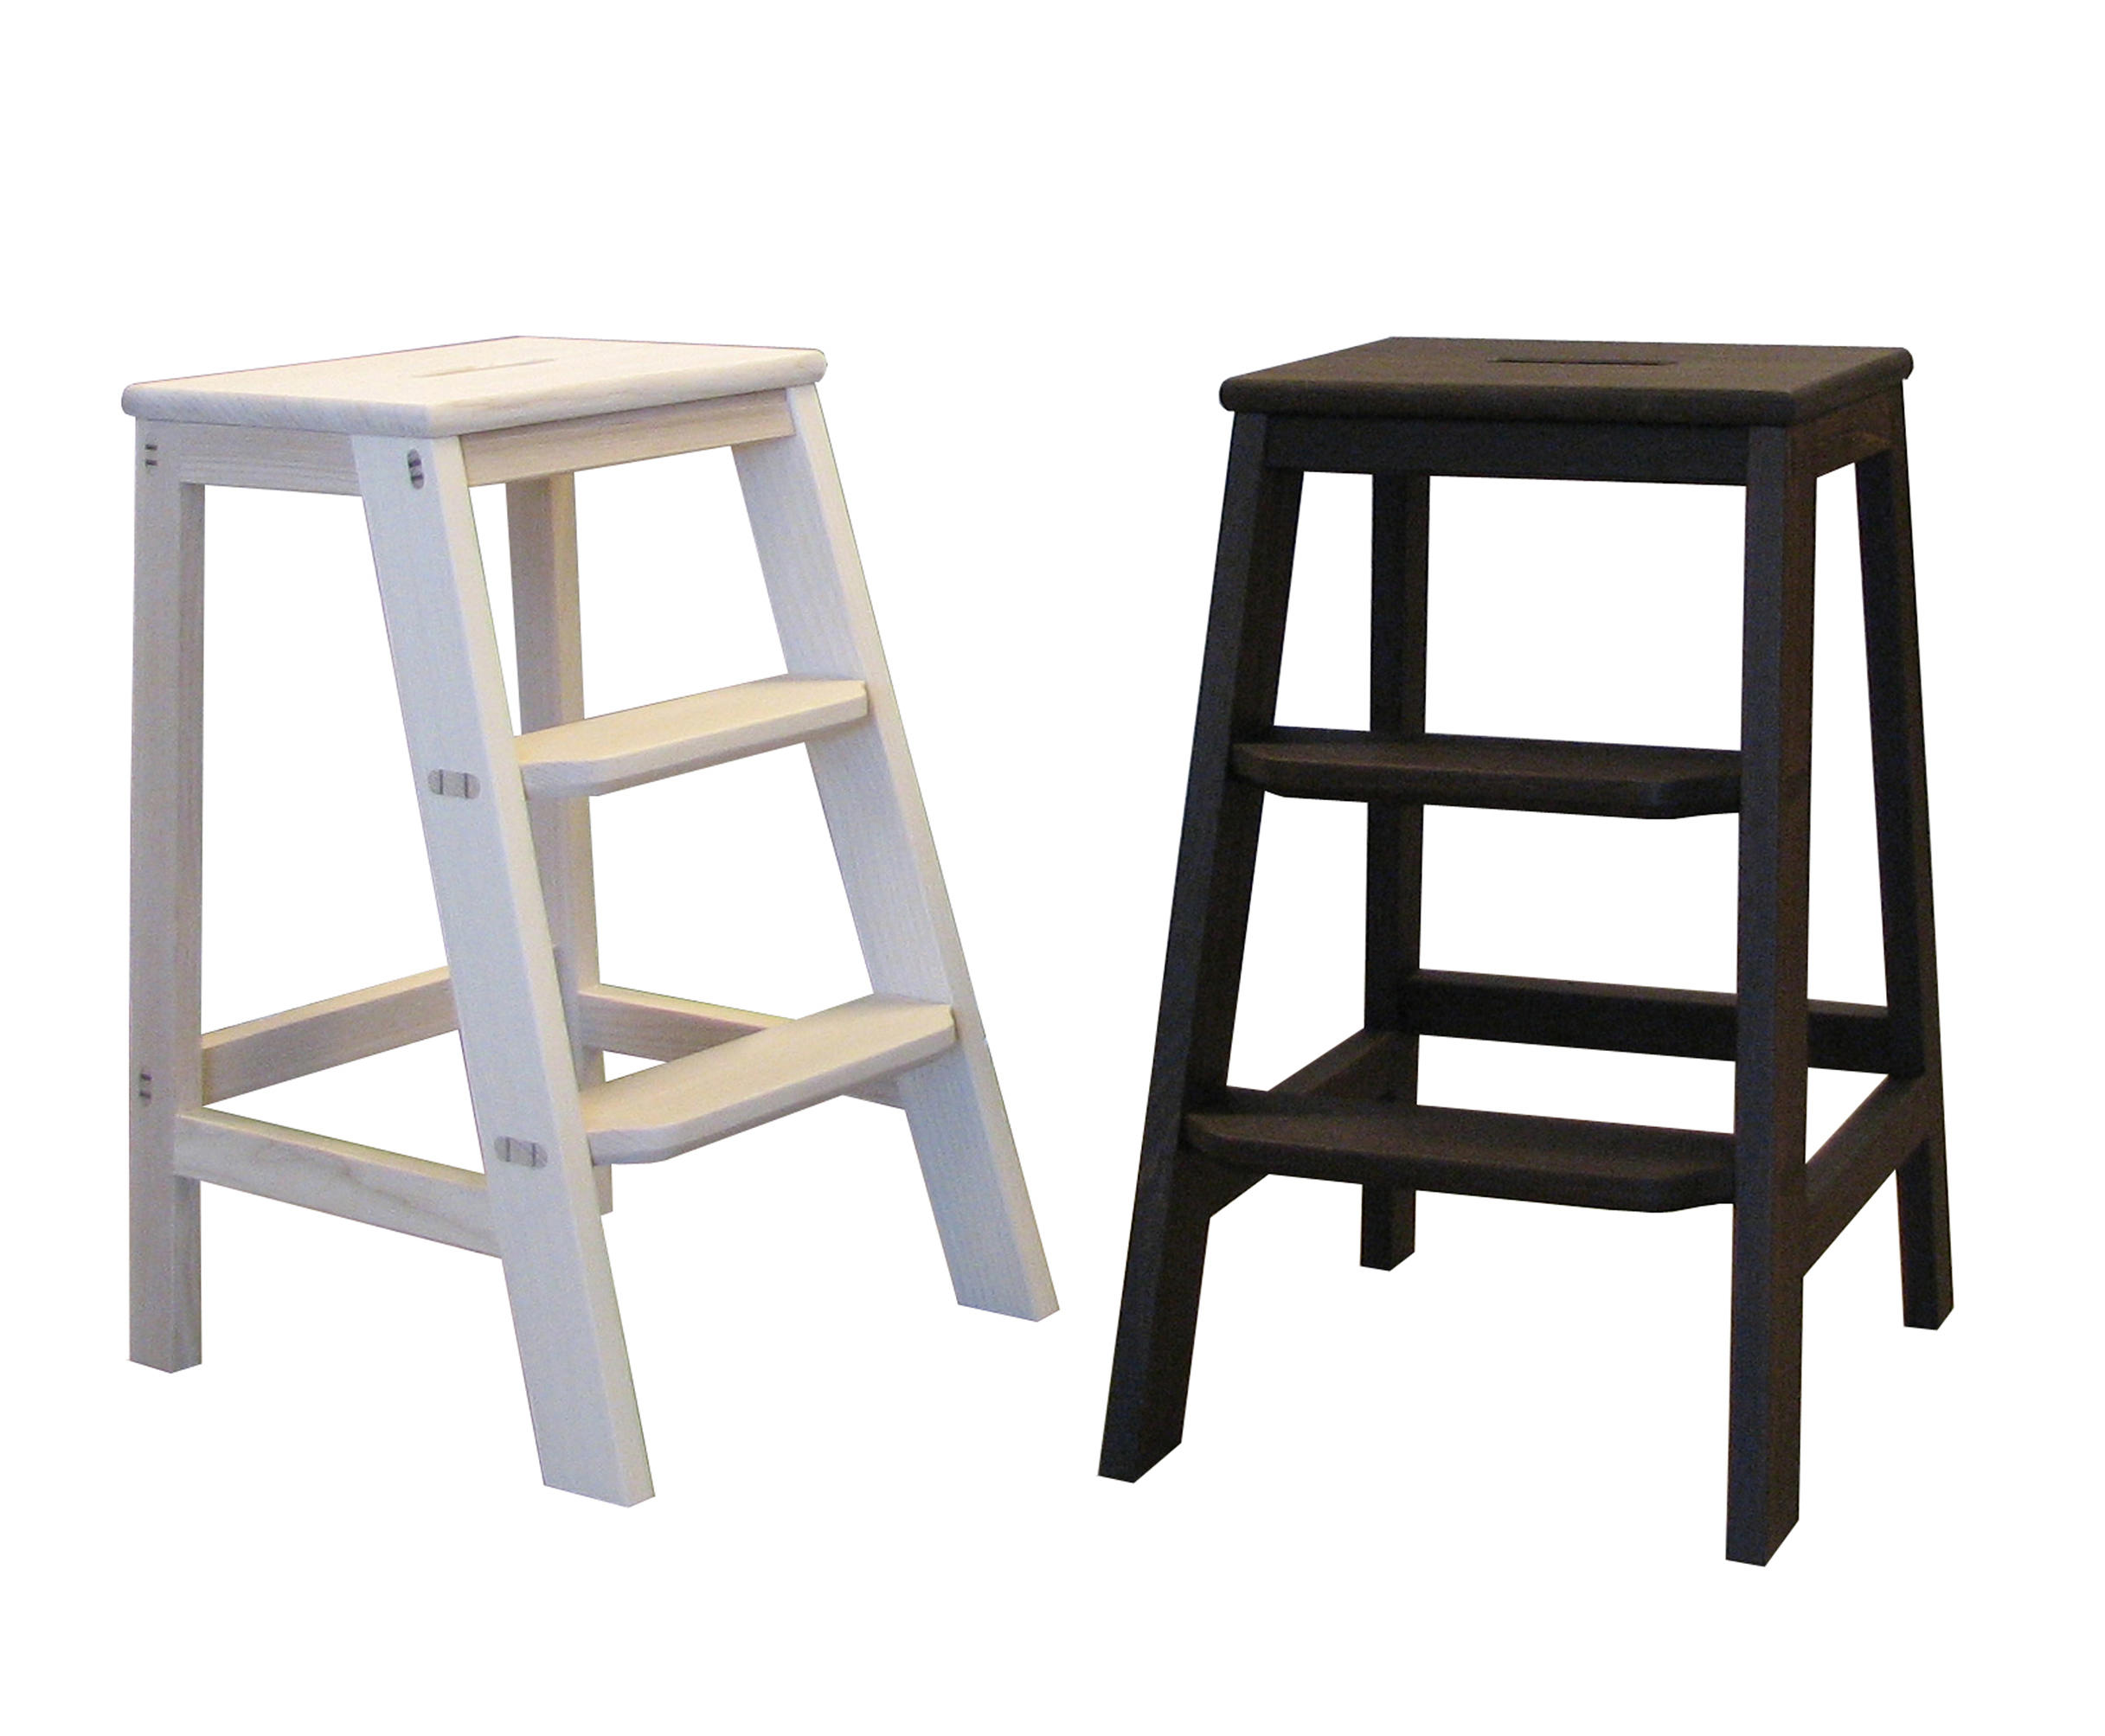 STEP STEP STOOL - Library ladders from Olby Design | Architonic